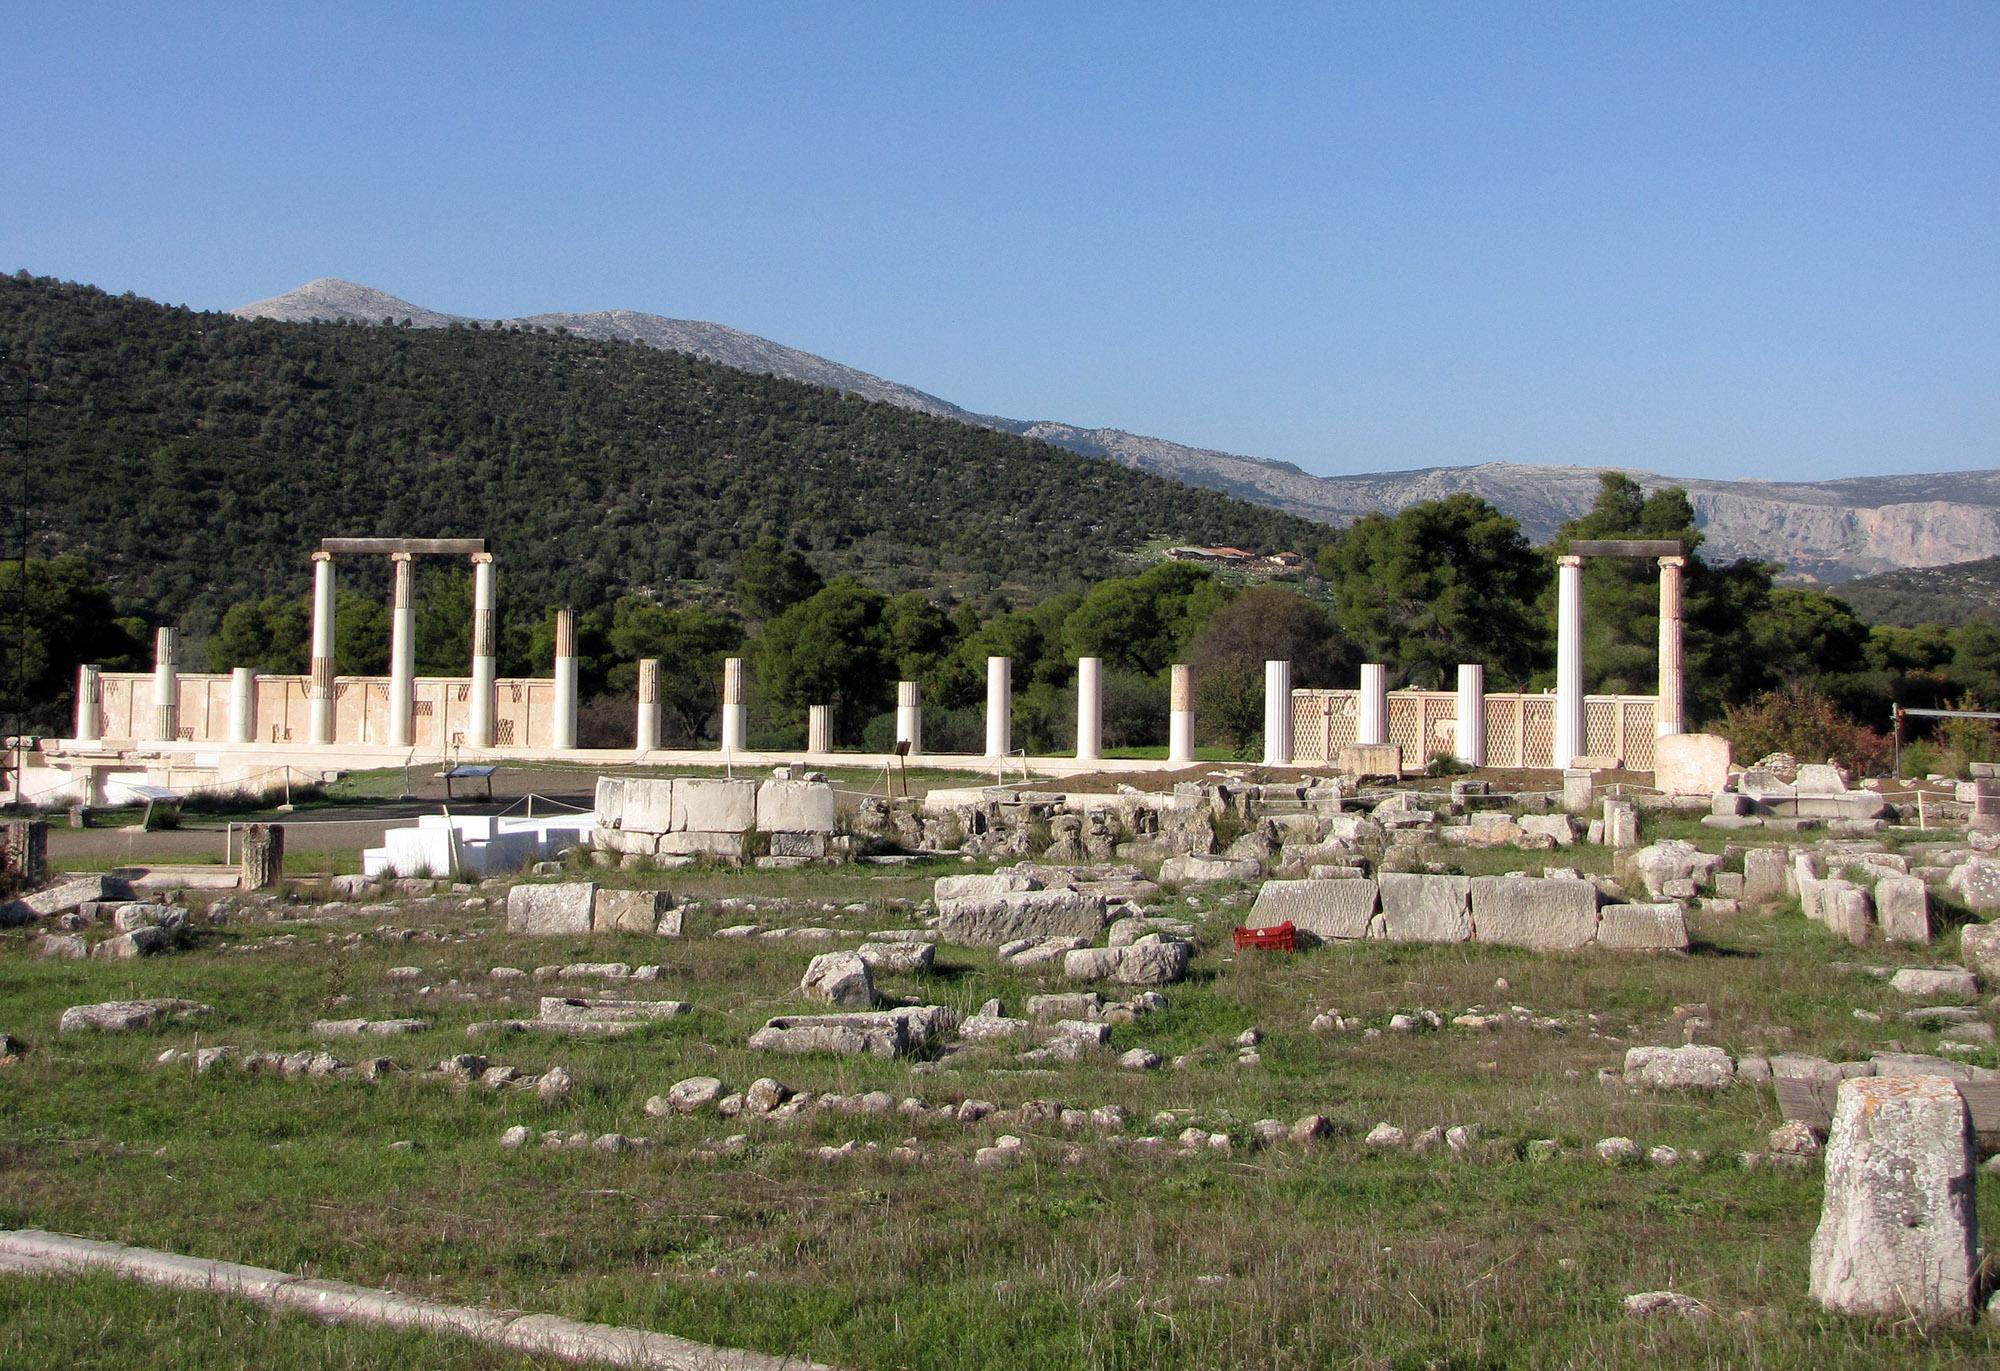 The Abaton-Enkoimeterion was a dormitory where the sick were cured through the direct contact with Asclepius, who purportedly visited them as they slept. – © Hellenic Ministry of Culture and Sports / Ephorate of Antiquities of Argolida